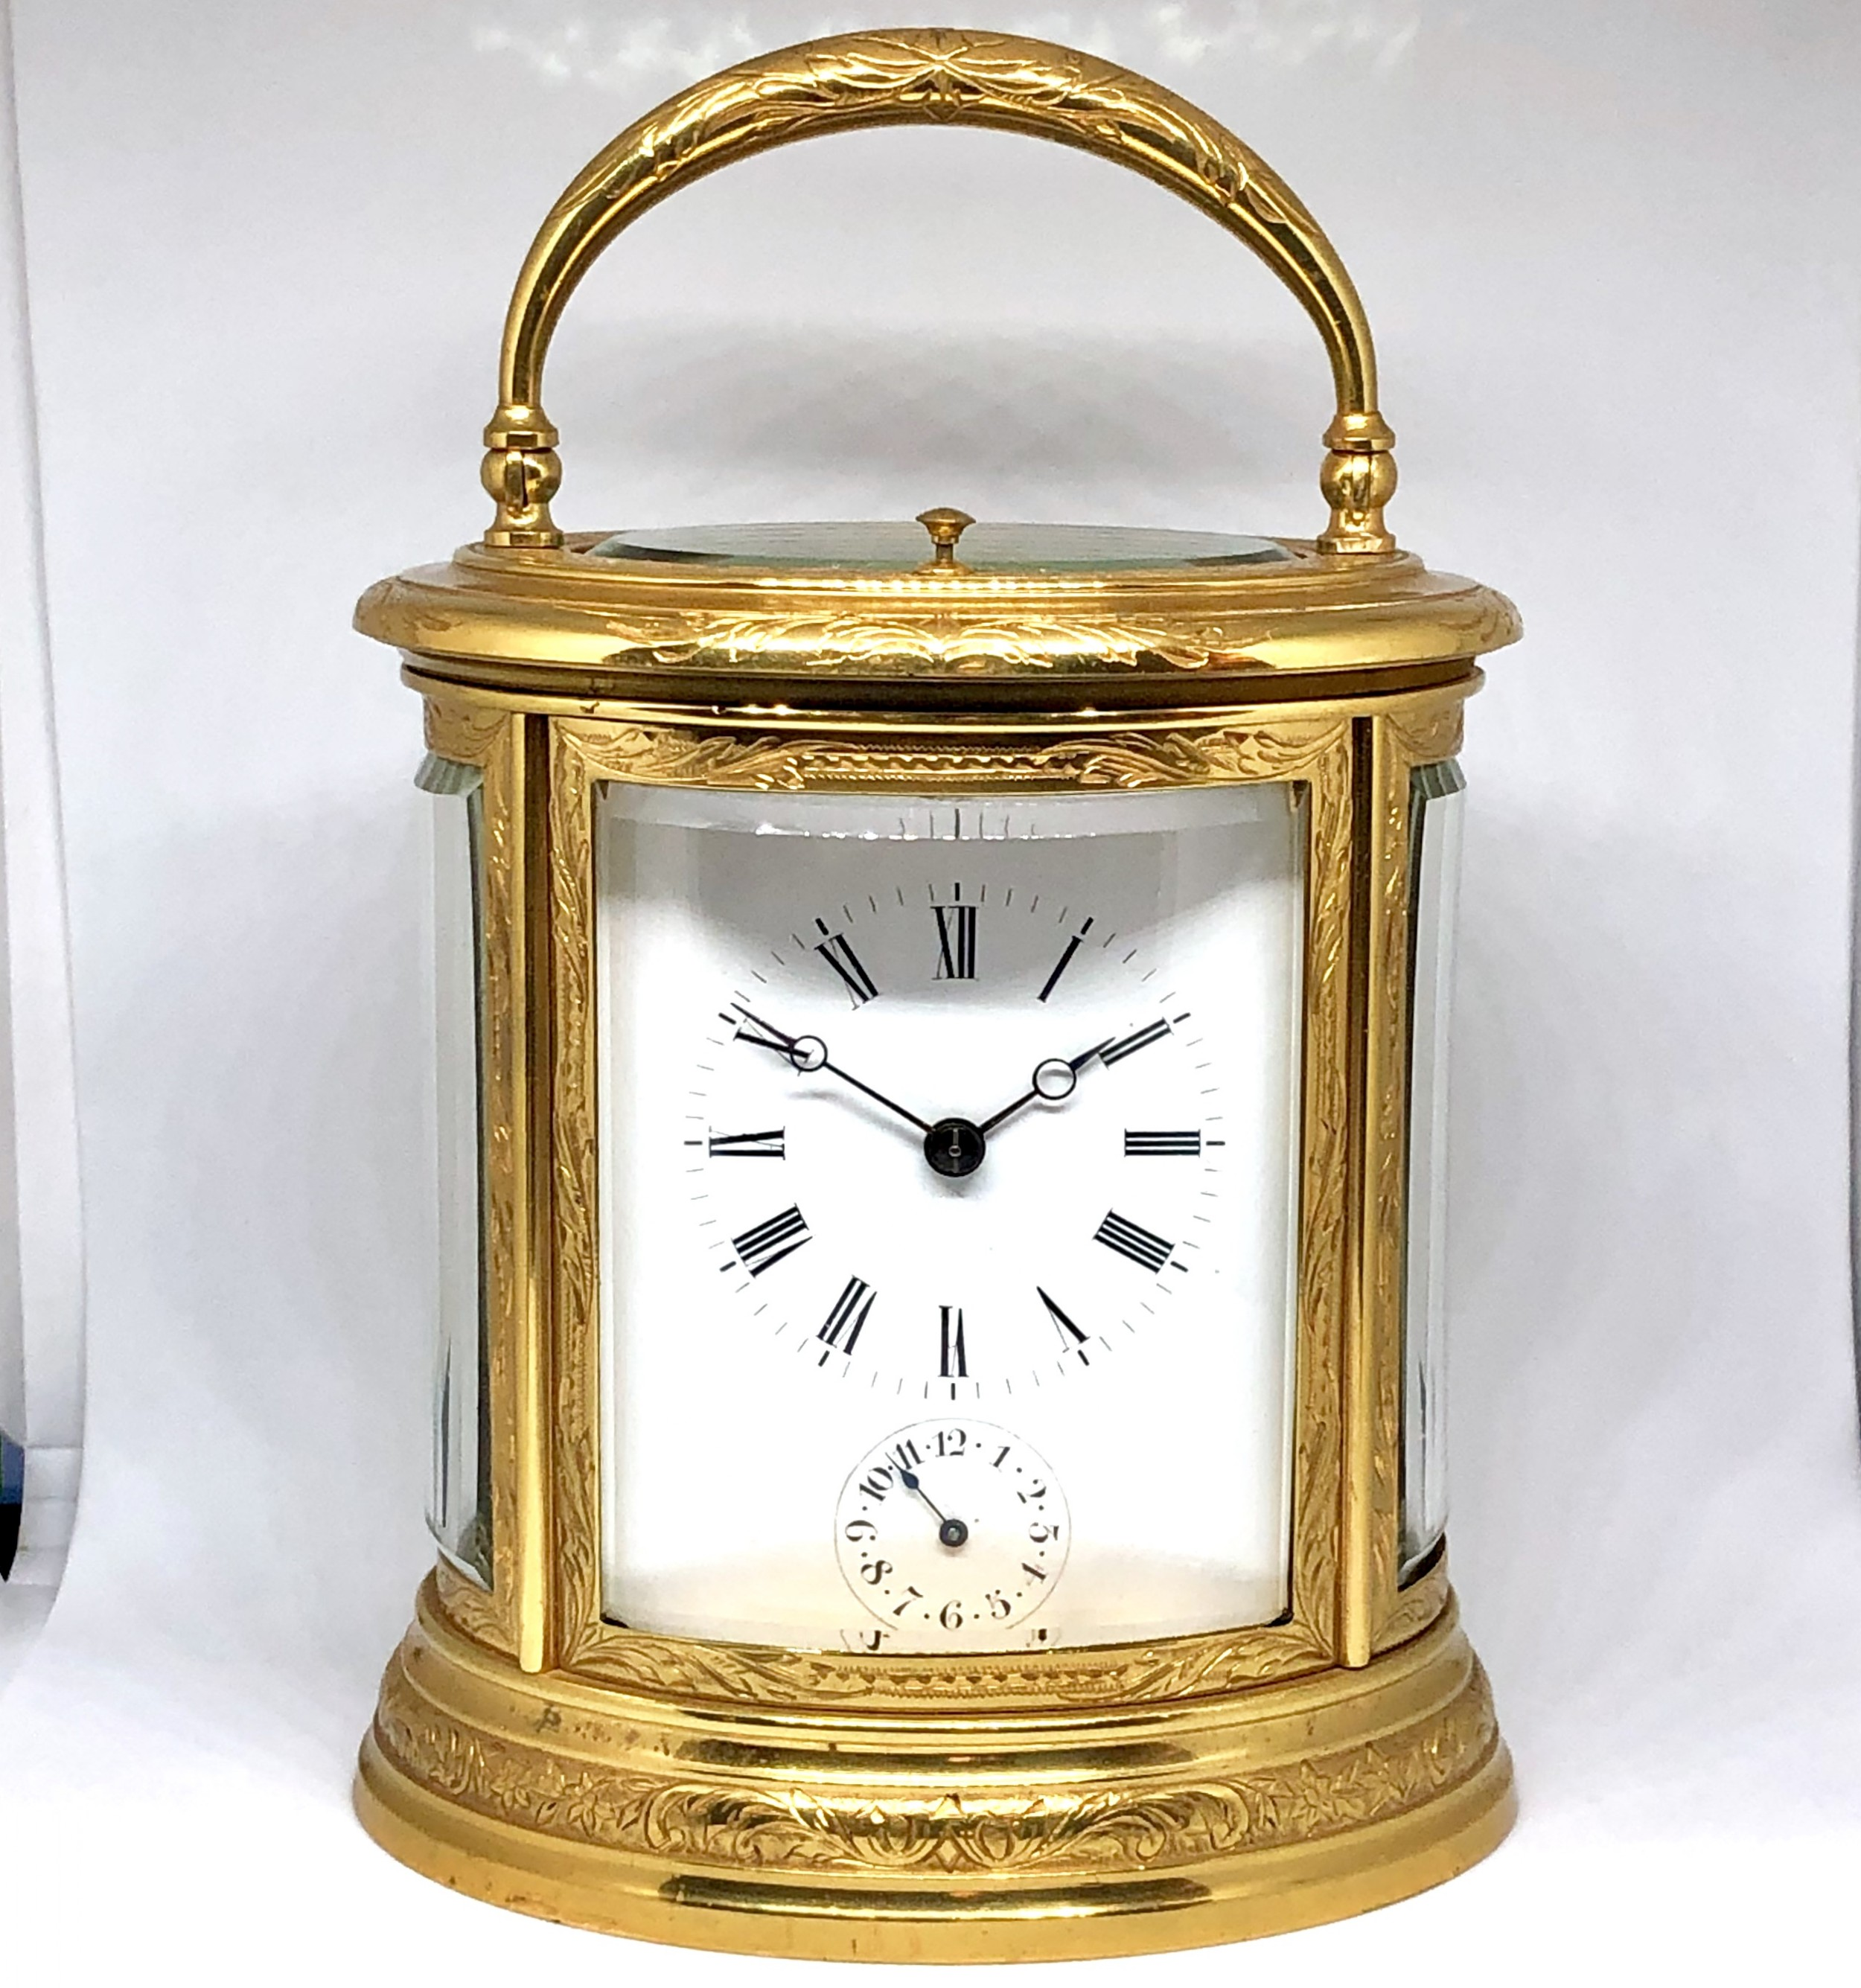 a fine late 19th century french gilt brass carriage clock by brunelot